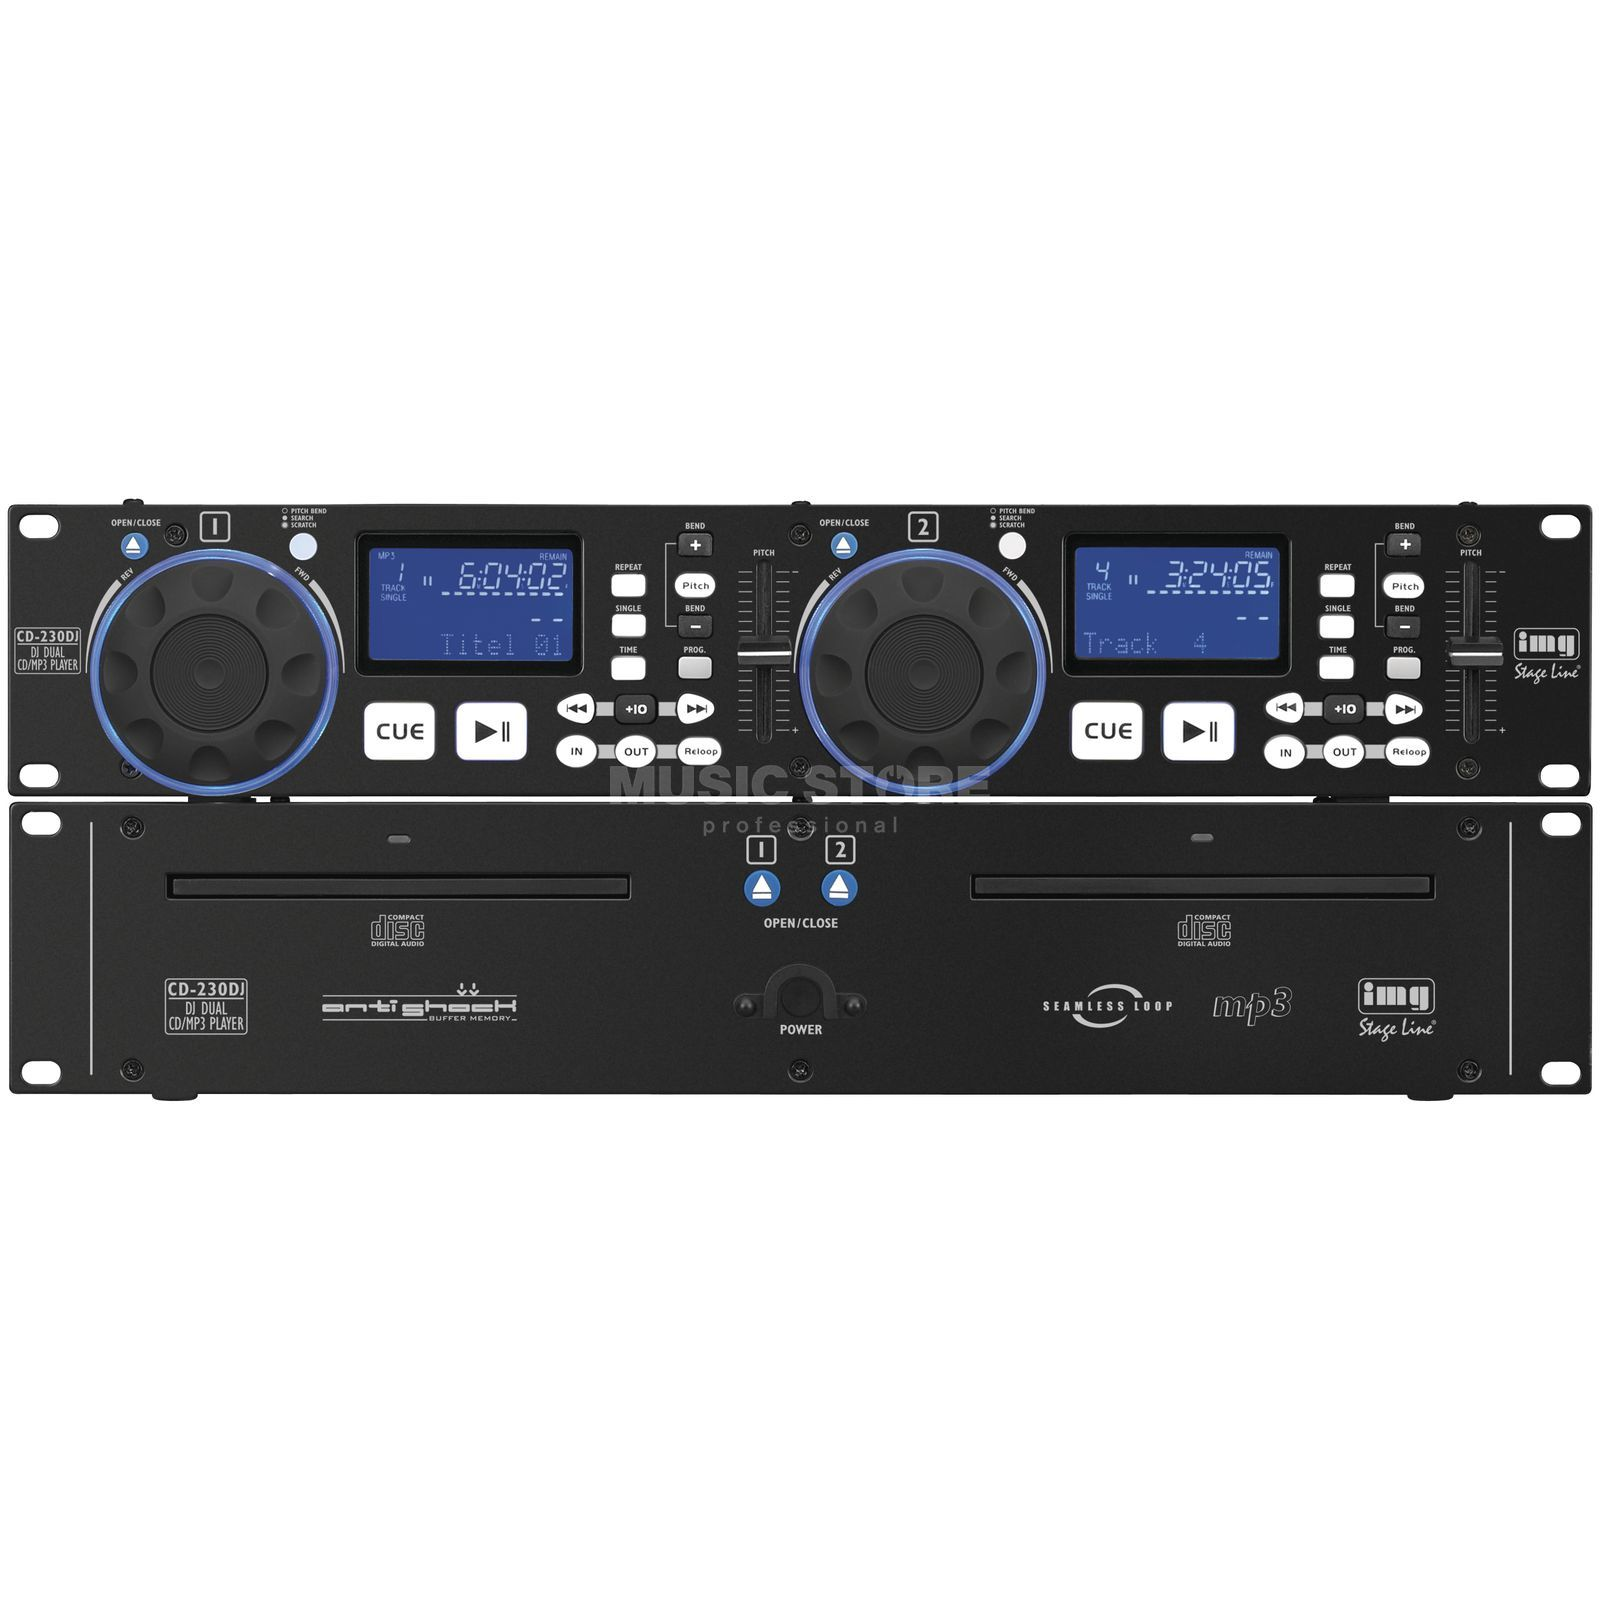 IMG STAGELINE CD-230DJ DJ-Dual-CD-/MP3-Player Product Image